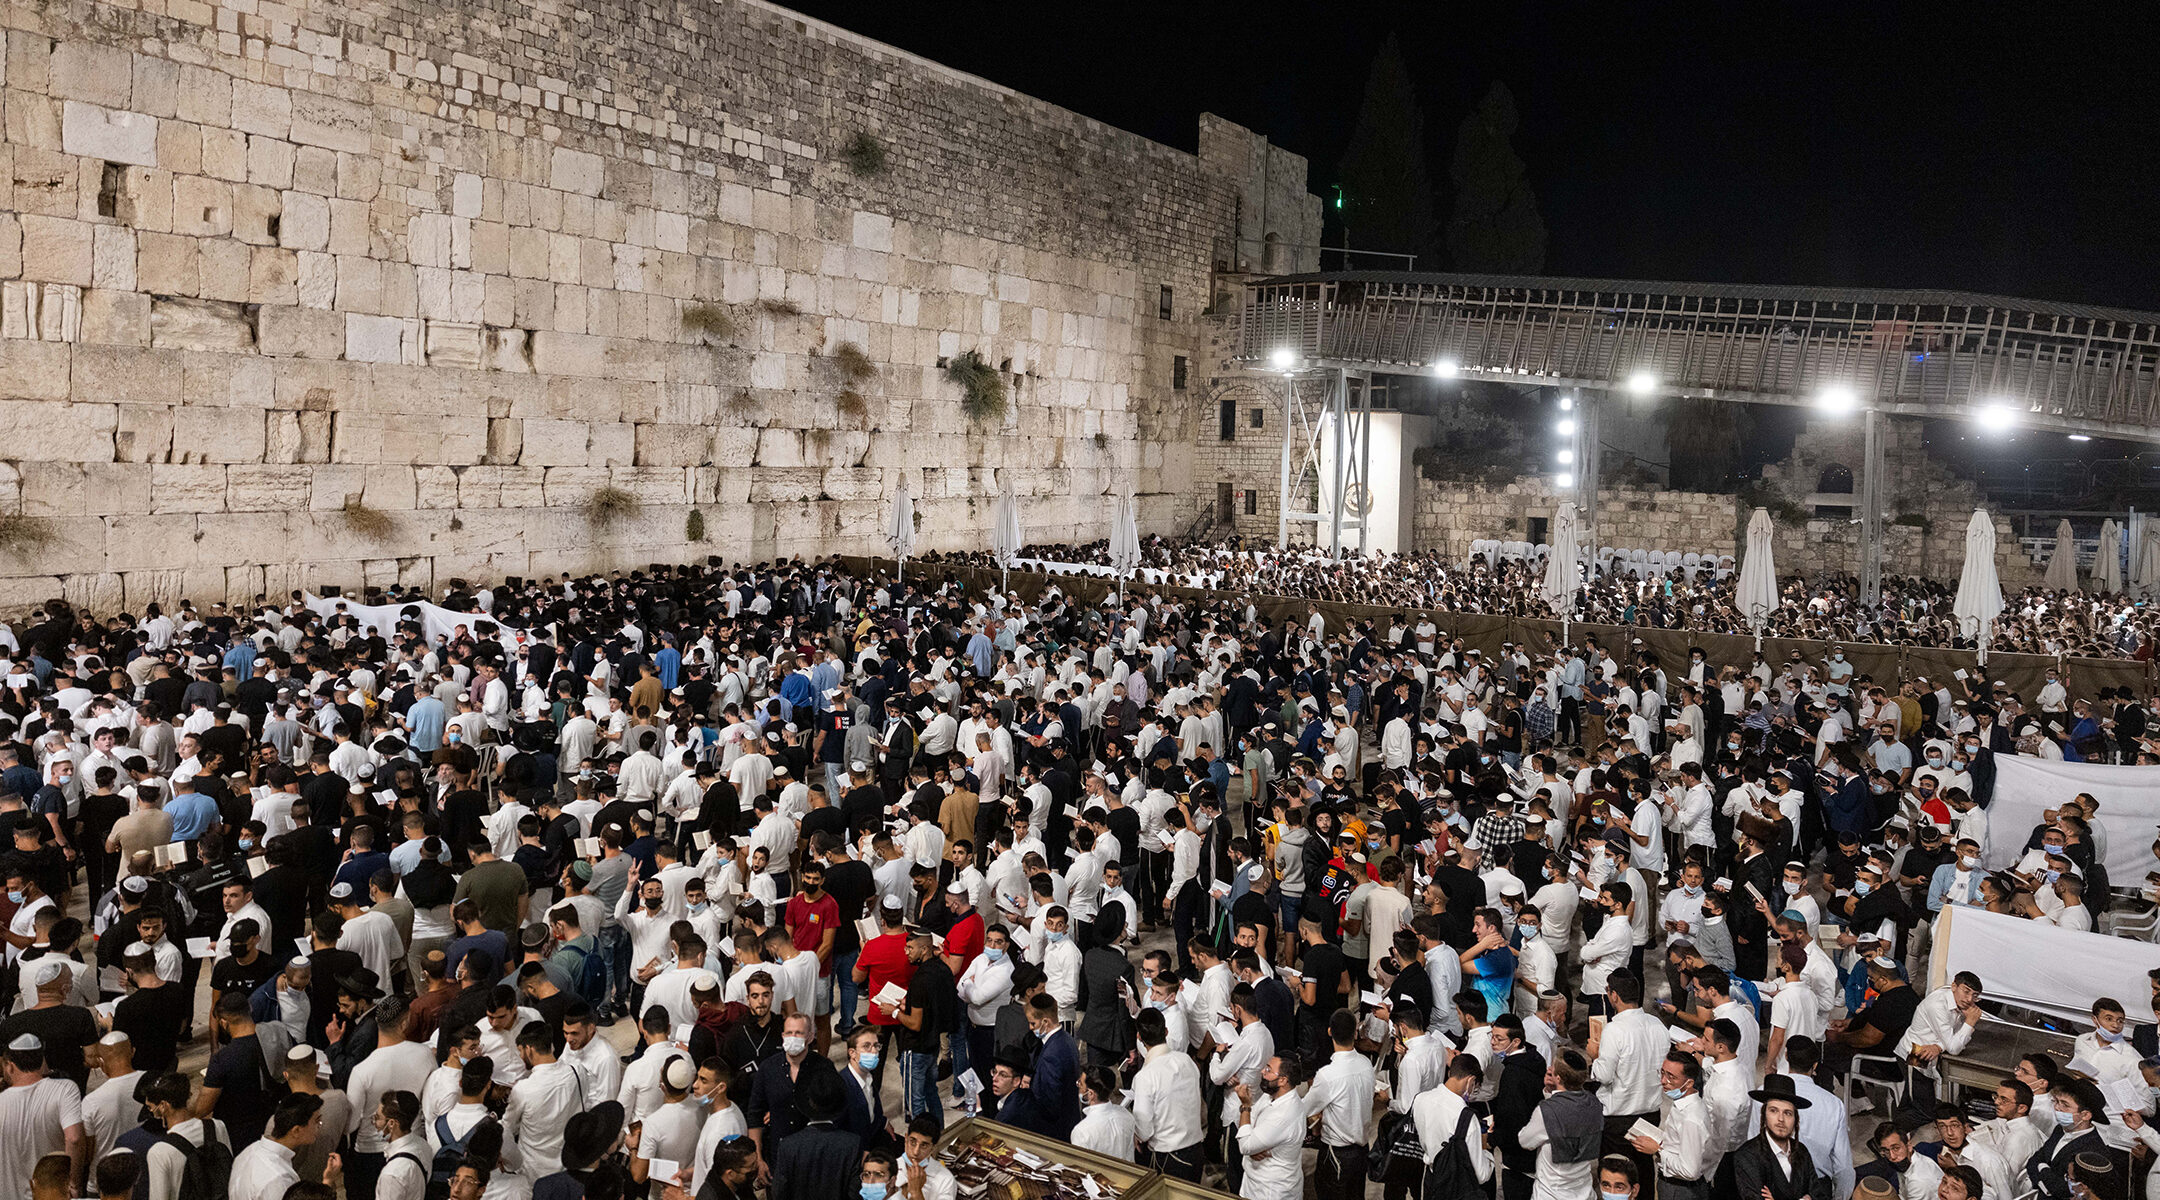 Jews pray for forgiveness at the Western Wall in the Old City of Jerusalem a day before the Jewish New Year, Sept. 5, 2021 (Photo/JTA-Yonatan Sindel-Flash90)